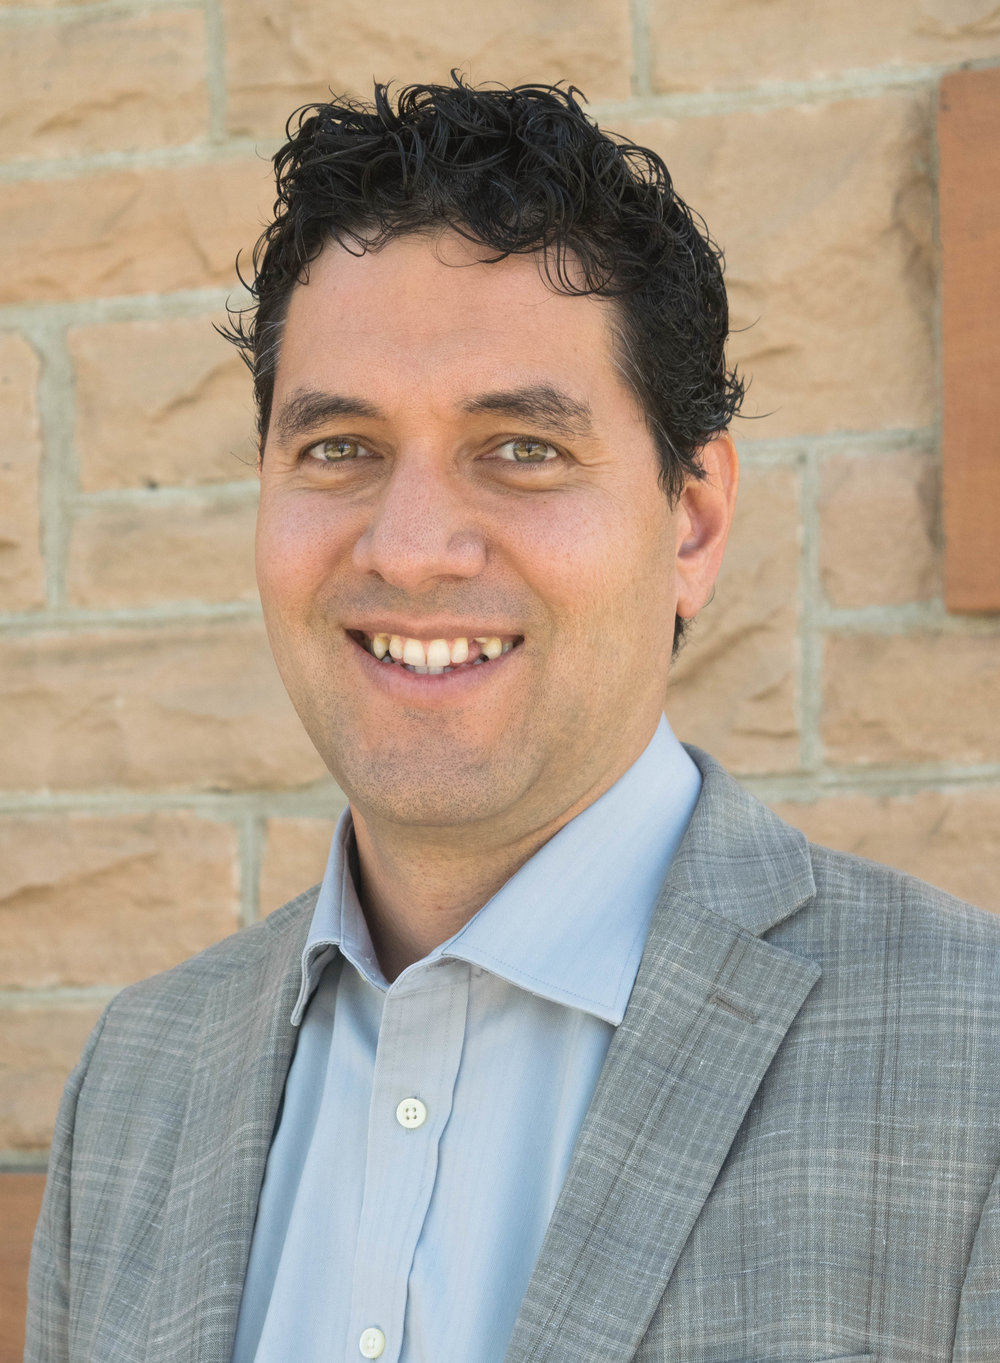 JUAN PENA  CHIEF PROGRAM OFFICER Juan received his mechanical engineering degree from the University of Massachusetts and his Master of Divinity from Baptist Bible Seminary in Clarks Summit, P.A. While attending seminary, Juan worked as an engineer and planted a multiethnic, socioeconomically diverse church in the Poconos. In 2008, he moved to Denver to be a part of the elder team at Providence Bible Church. He is now the Chief Program Officer of CrossPurpose, and is passionate about helping Denver families escape poverty and pursue their dreams through our year-long career and community development program. When he's not working, Juan enjoys spending time with his wife and four boys, cheering for the Patriots, and loving his Clayton neighbors.